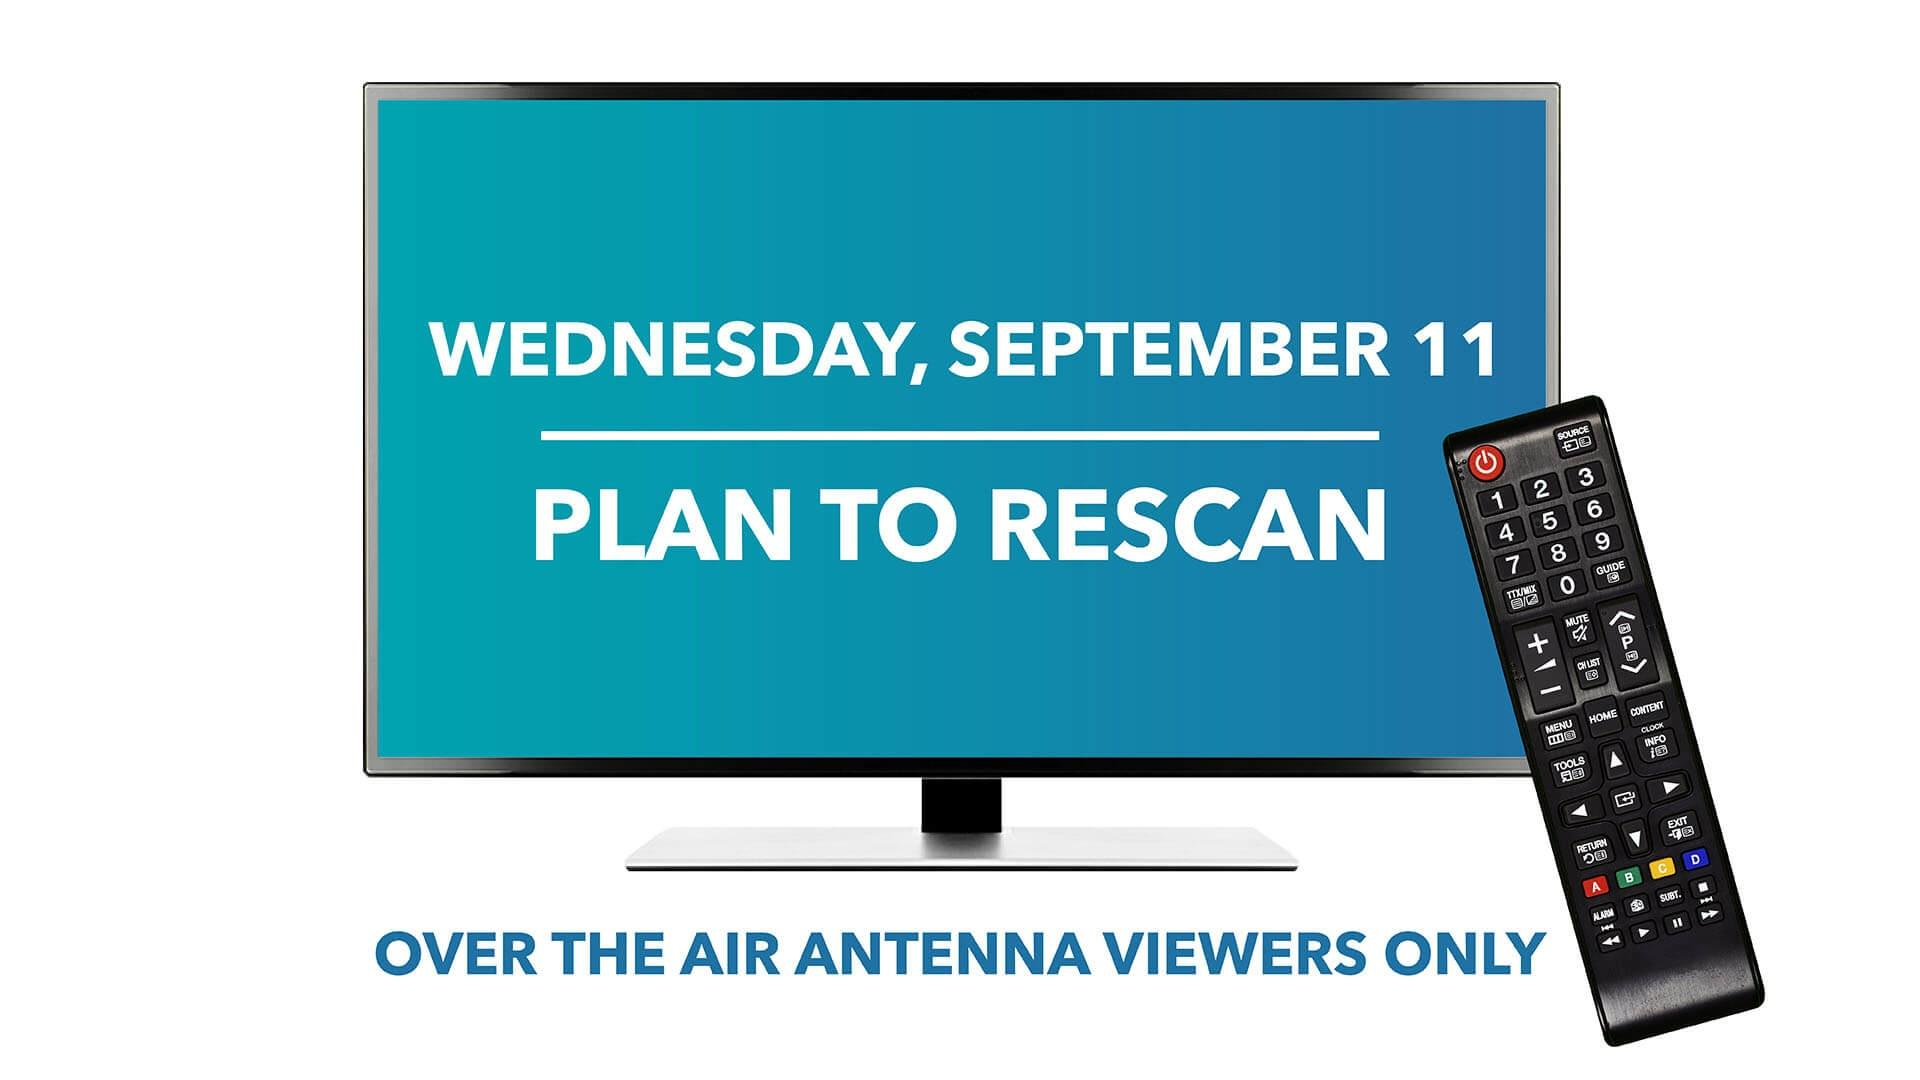 TV screen and remote with September 11 rescan logo